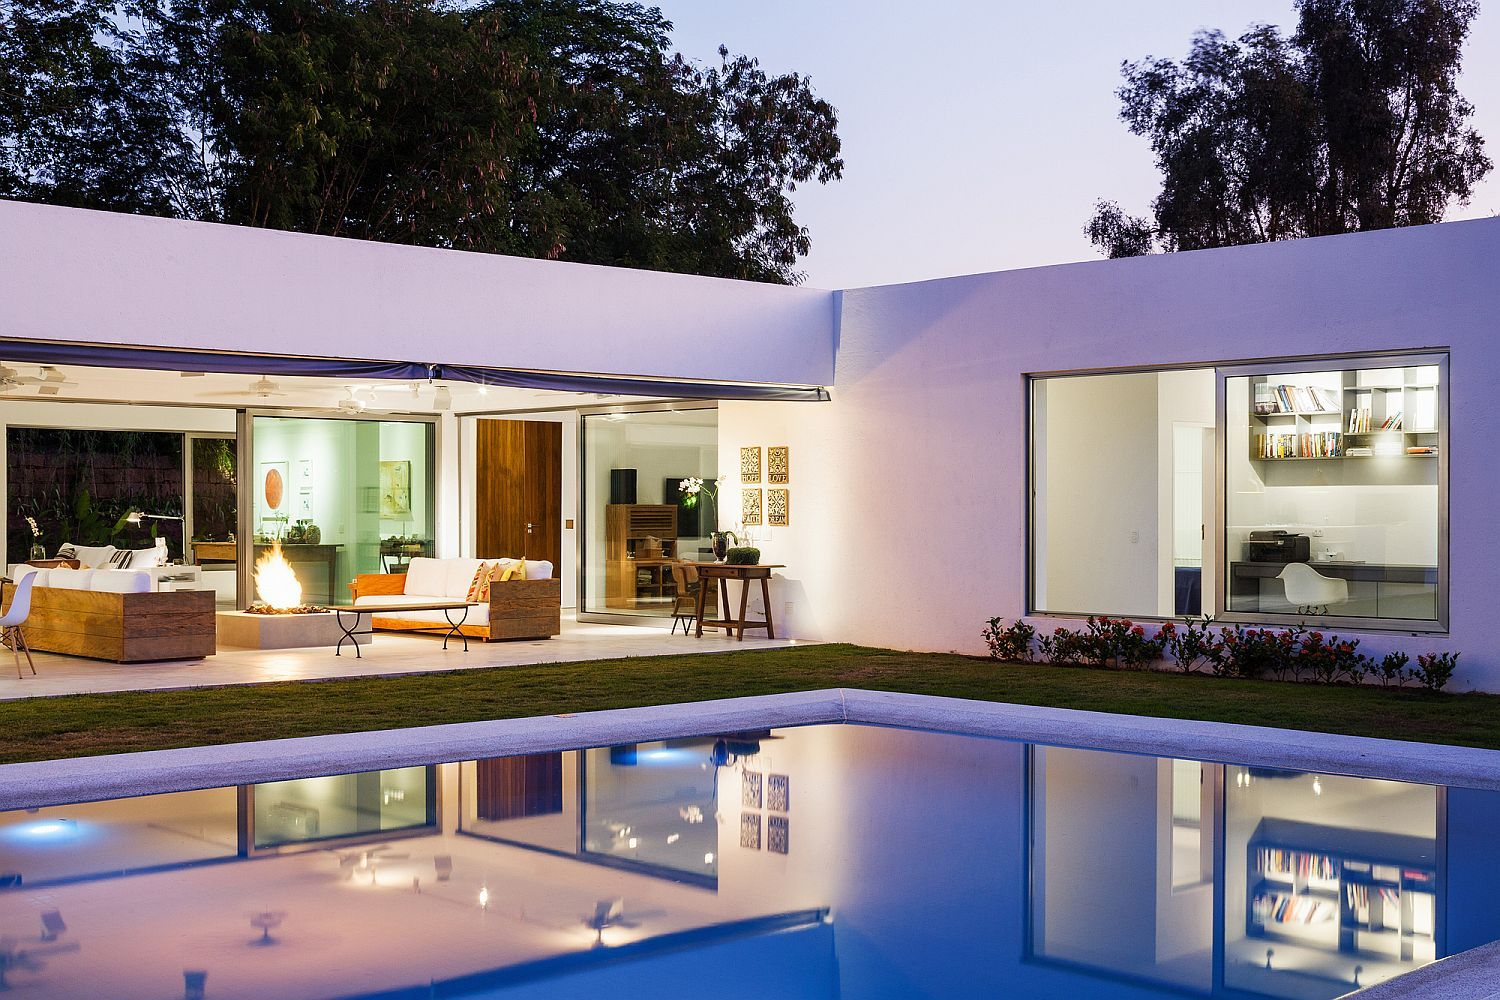 L Shaped Family Home Charms With A Stunning Private Courtyard And Pool Design Your Dream House Modern House Exterior Minimalist House Design